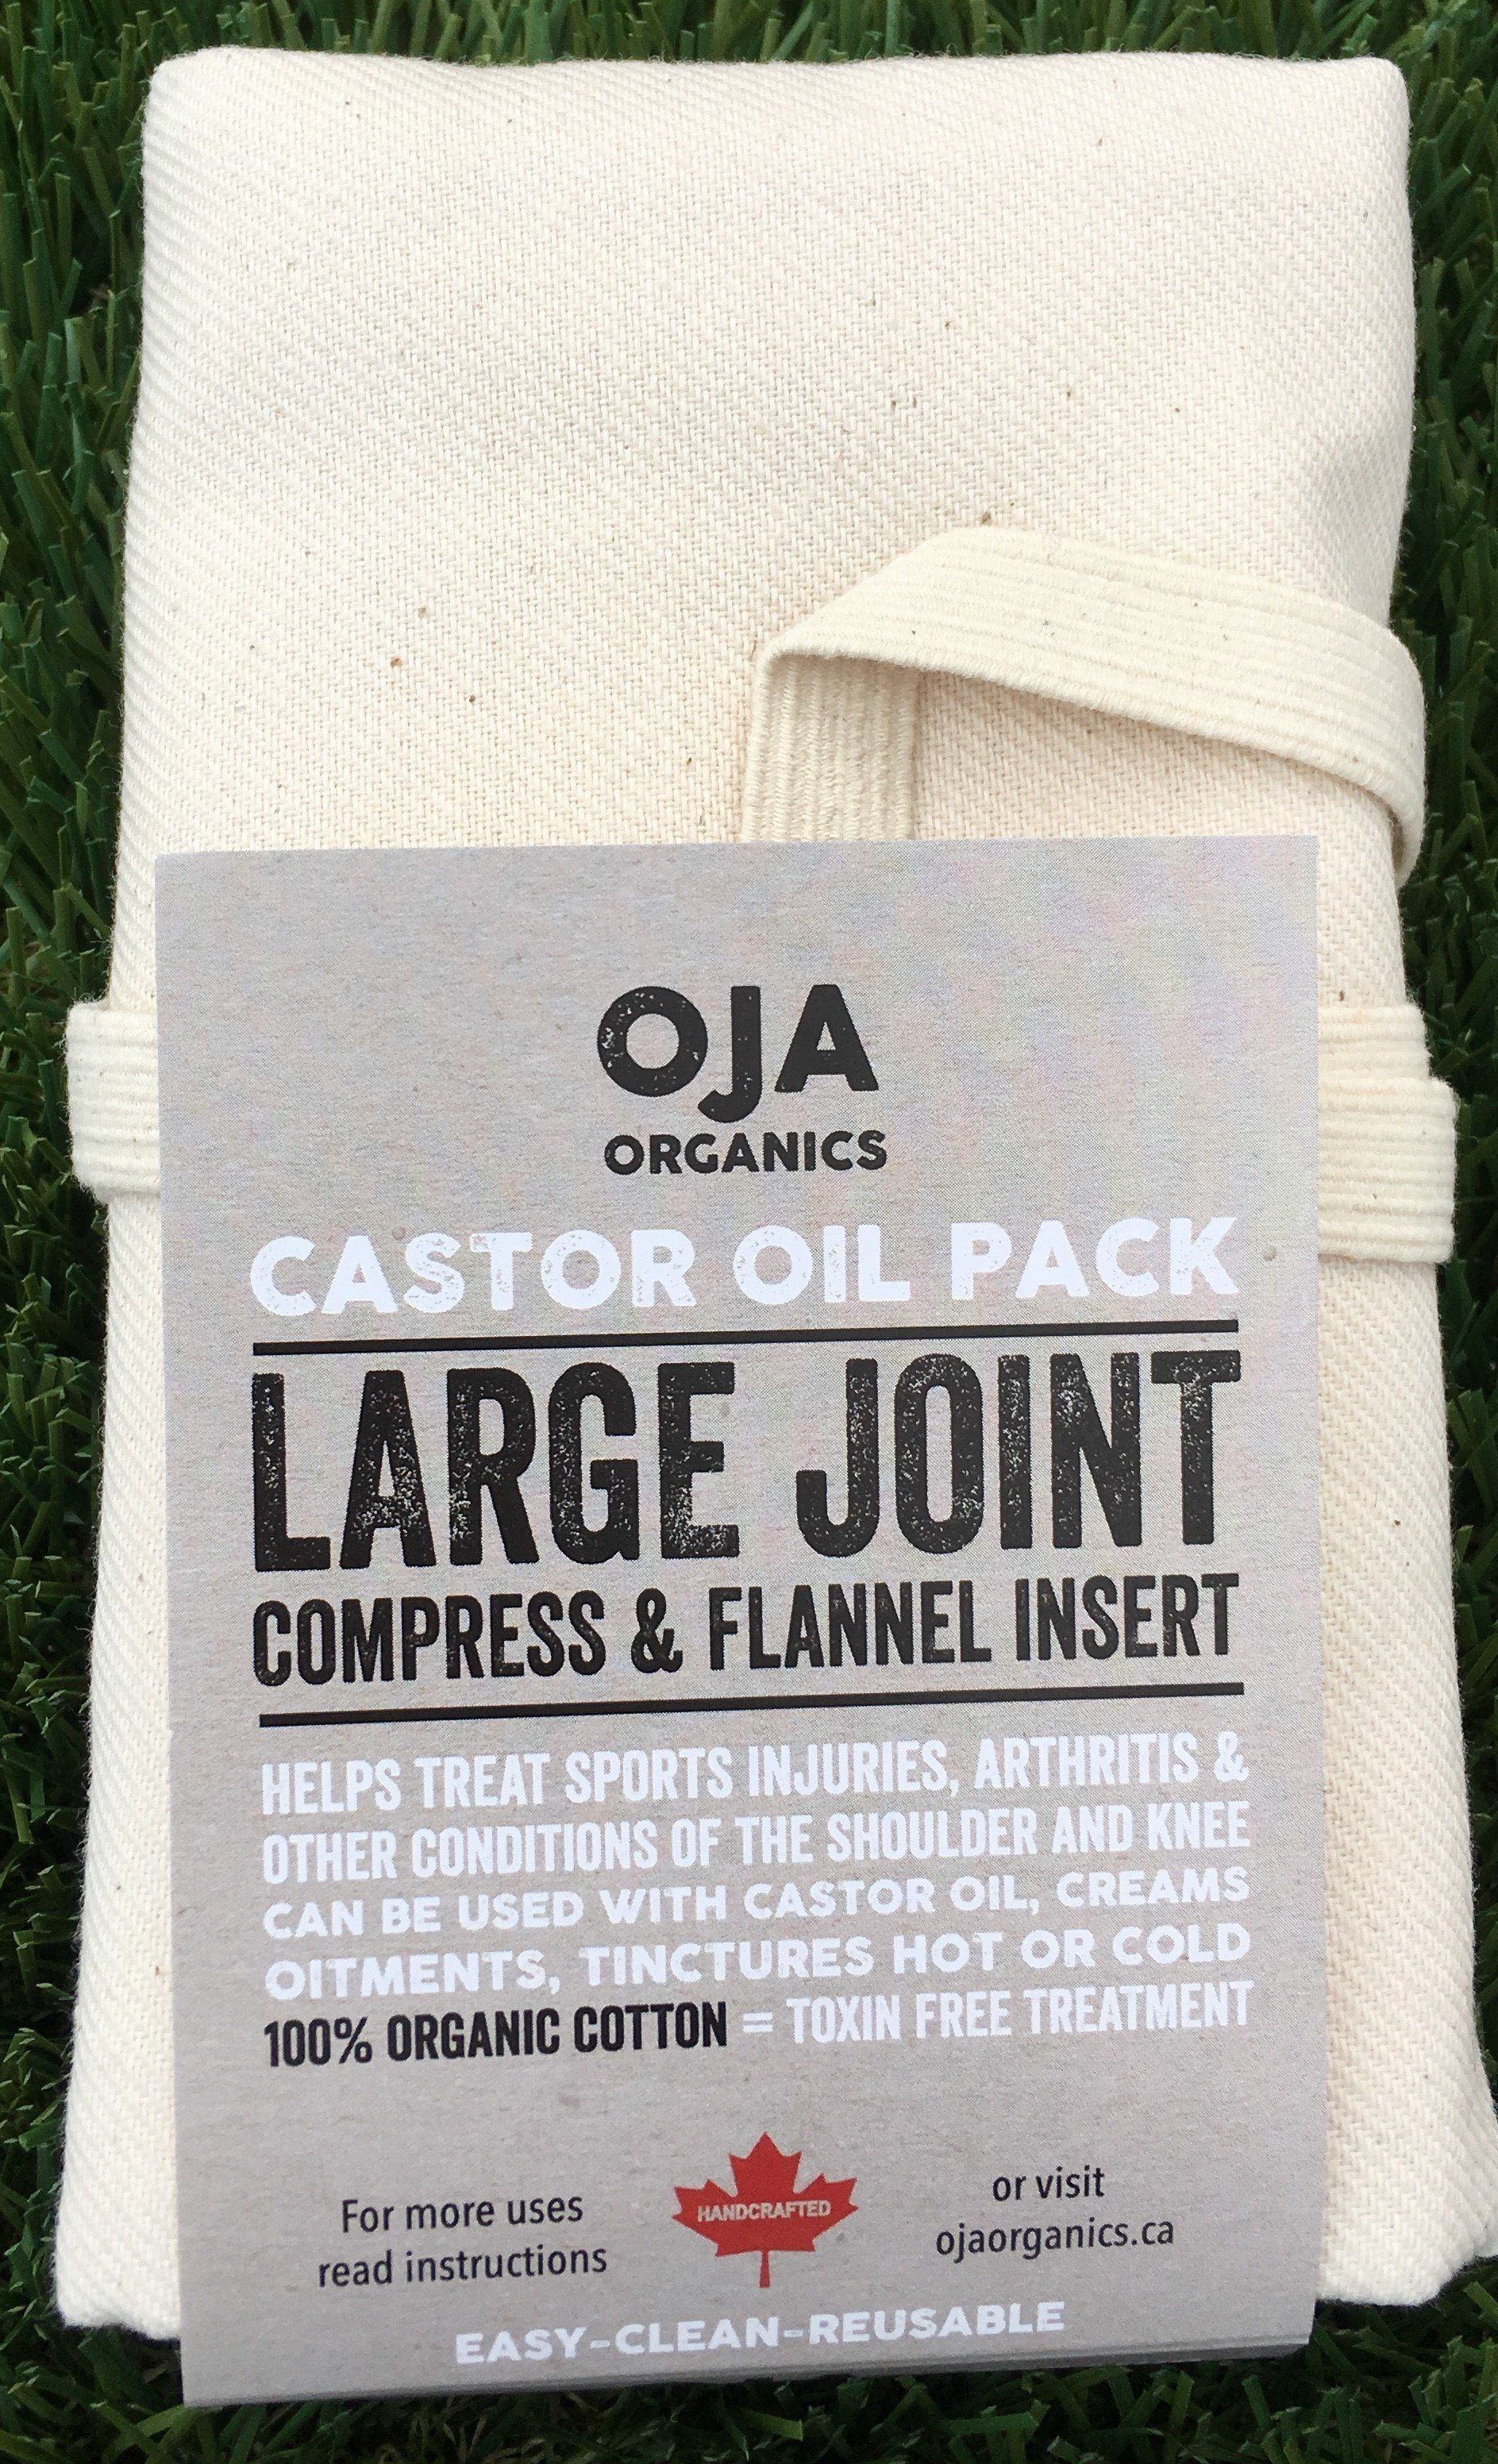 Supplements & Vitamins - Oja - Large Joint Castor Oil Pack